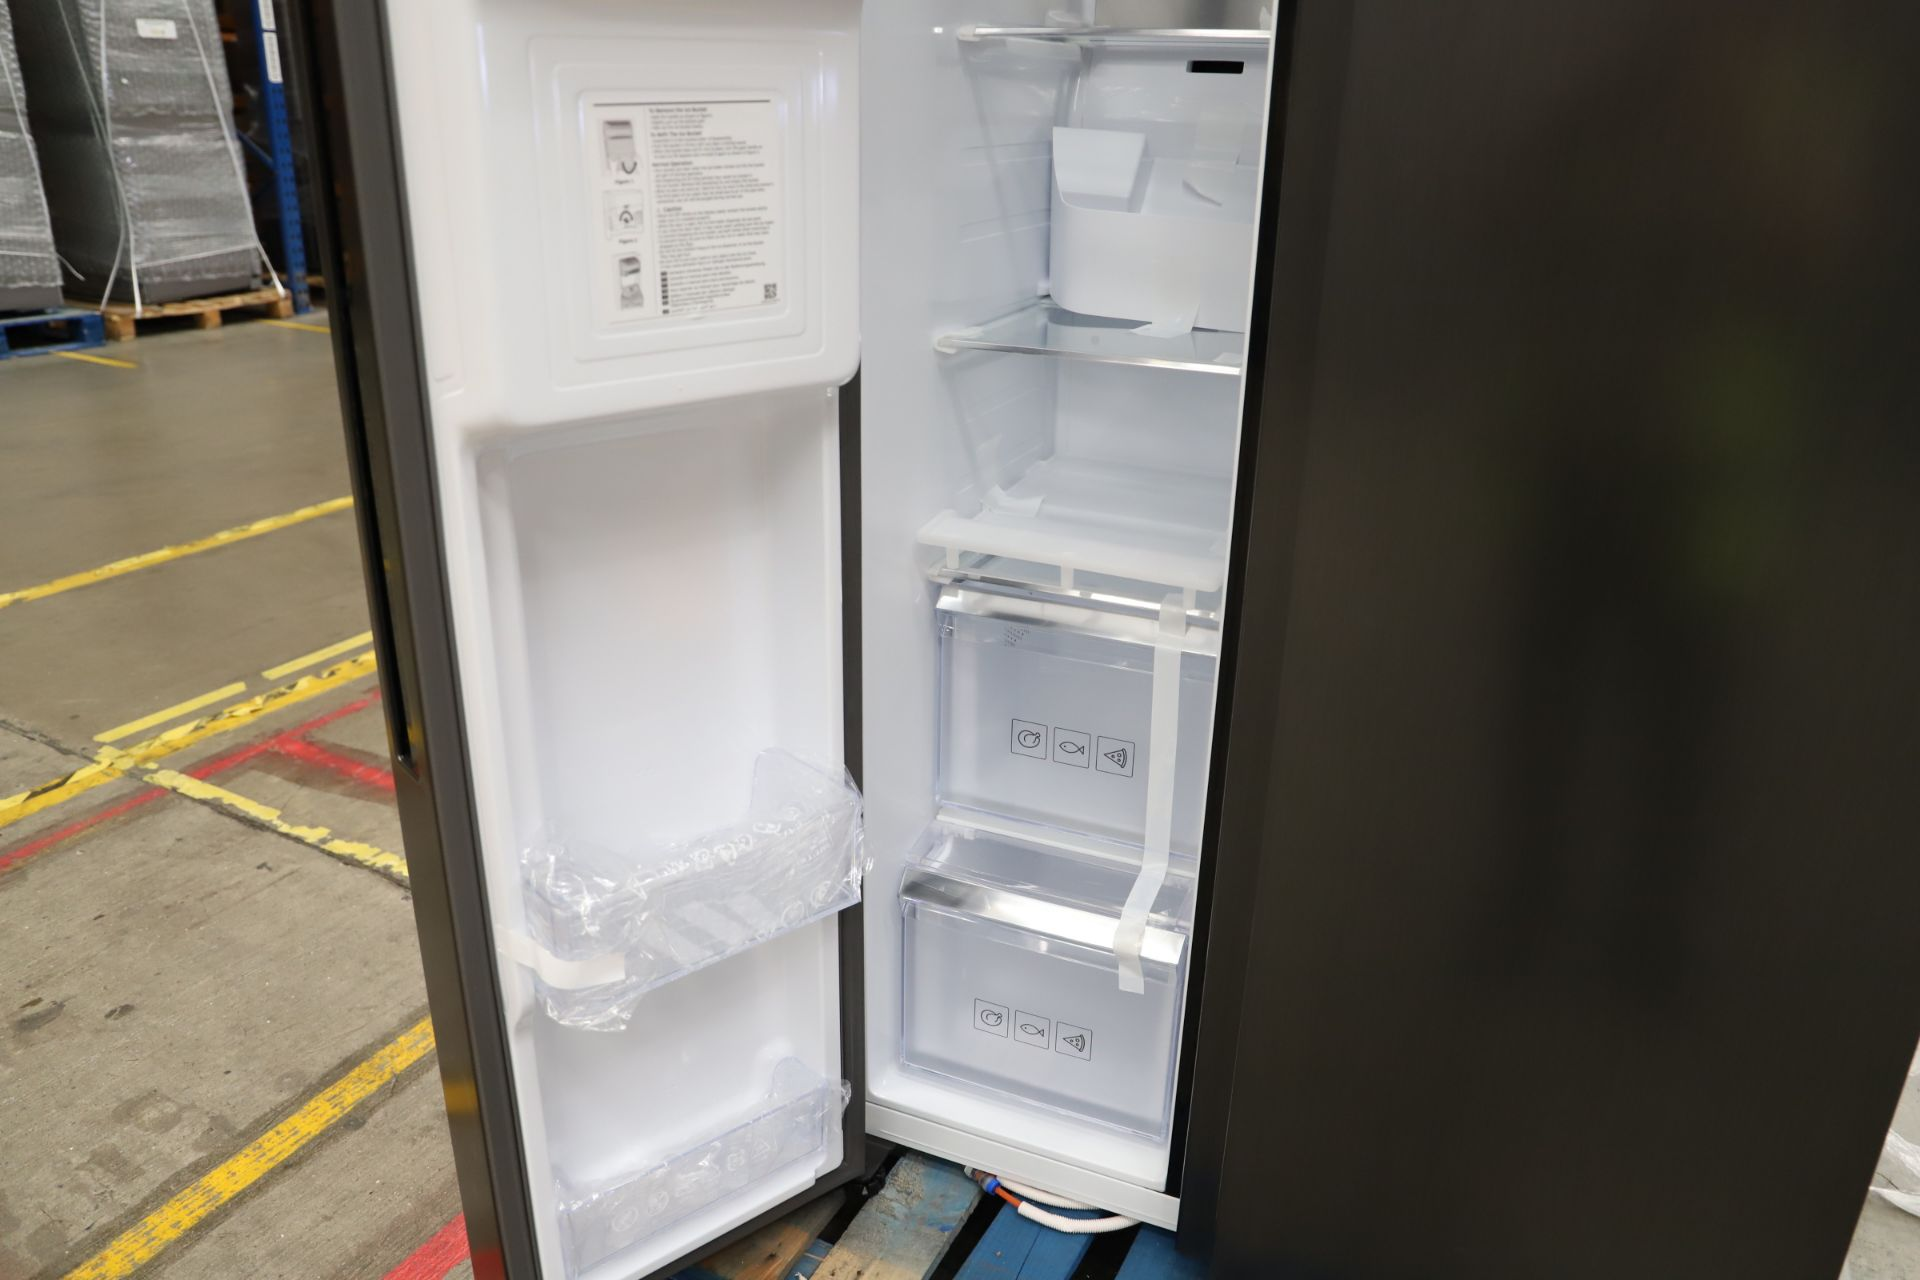 Pallet of 1 Samsung Water & Ice Fridge freezer. Latest selling price £1,799.99 - Image 6 of 10